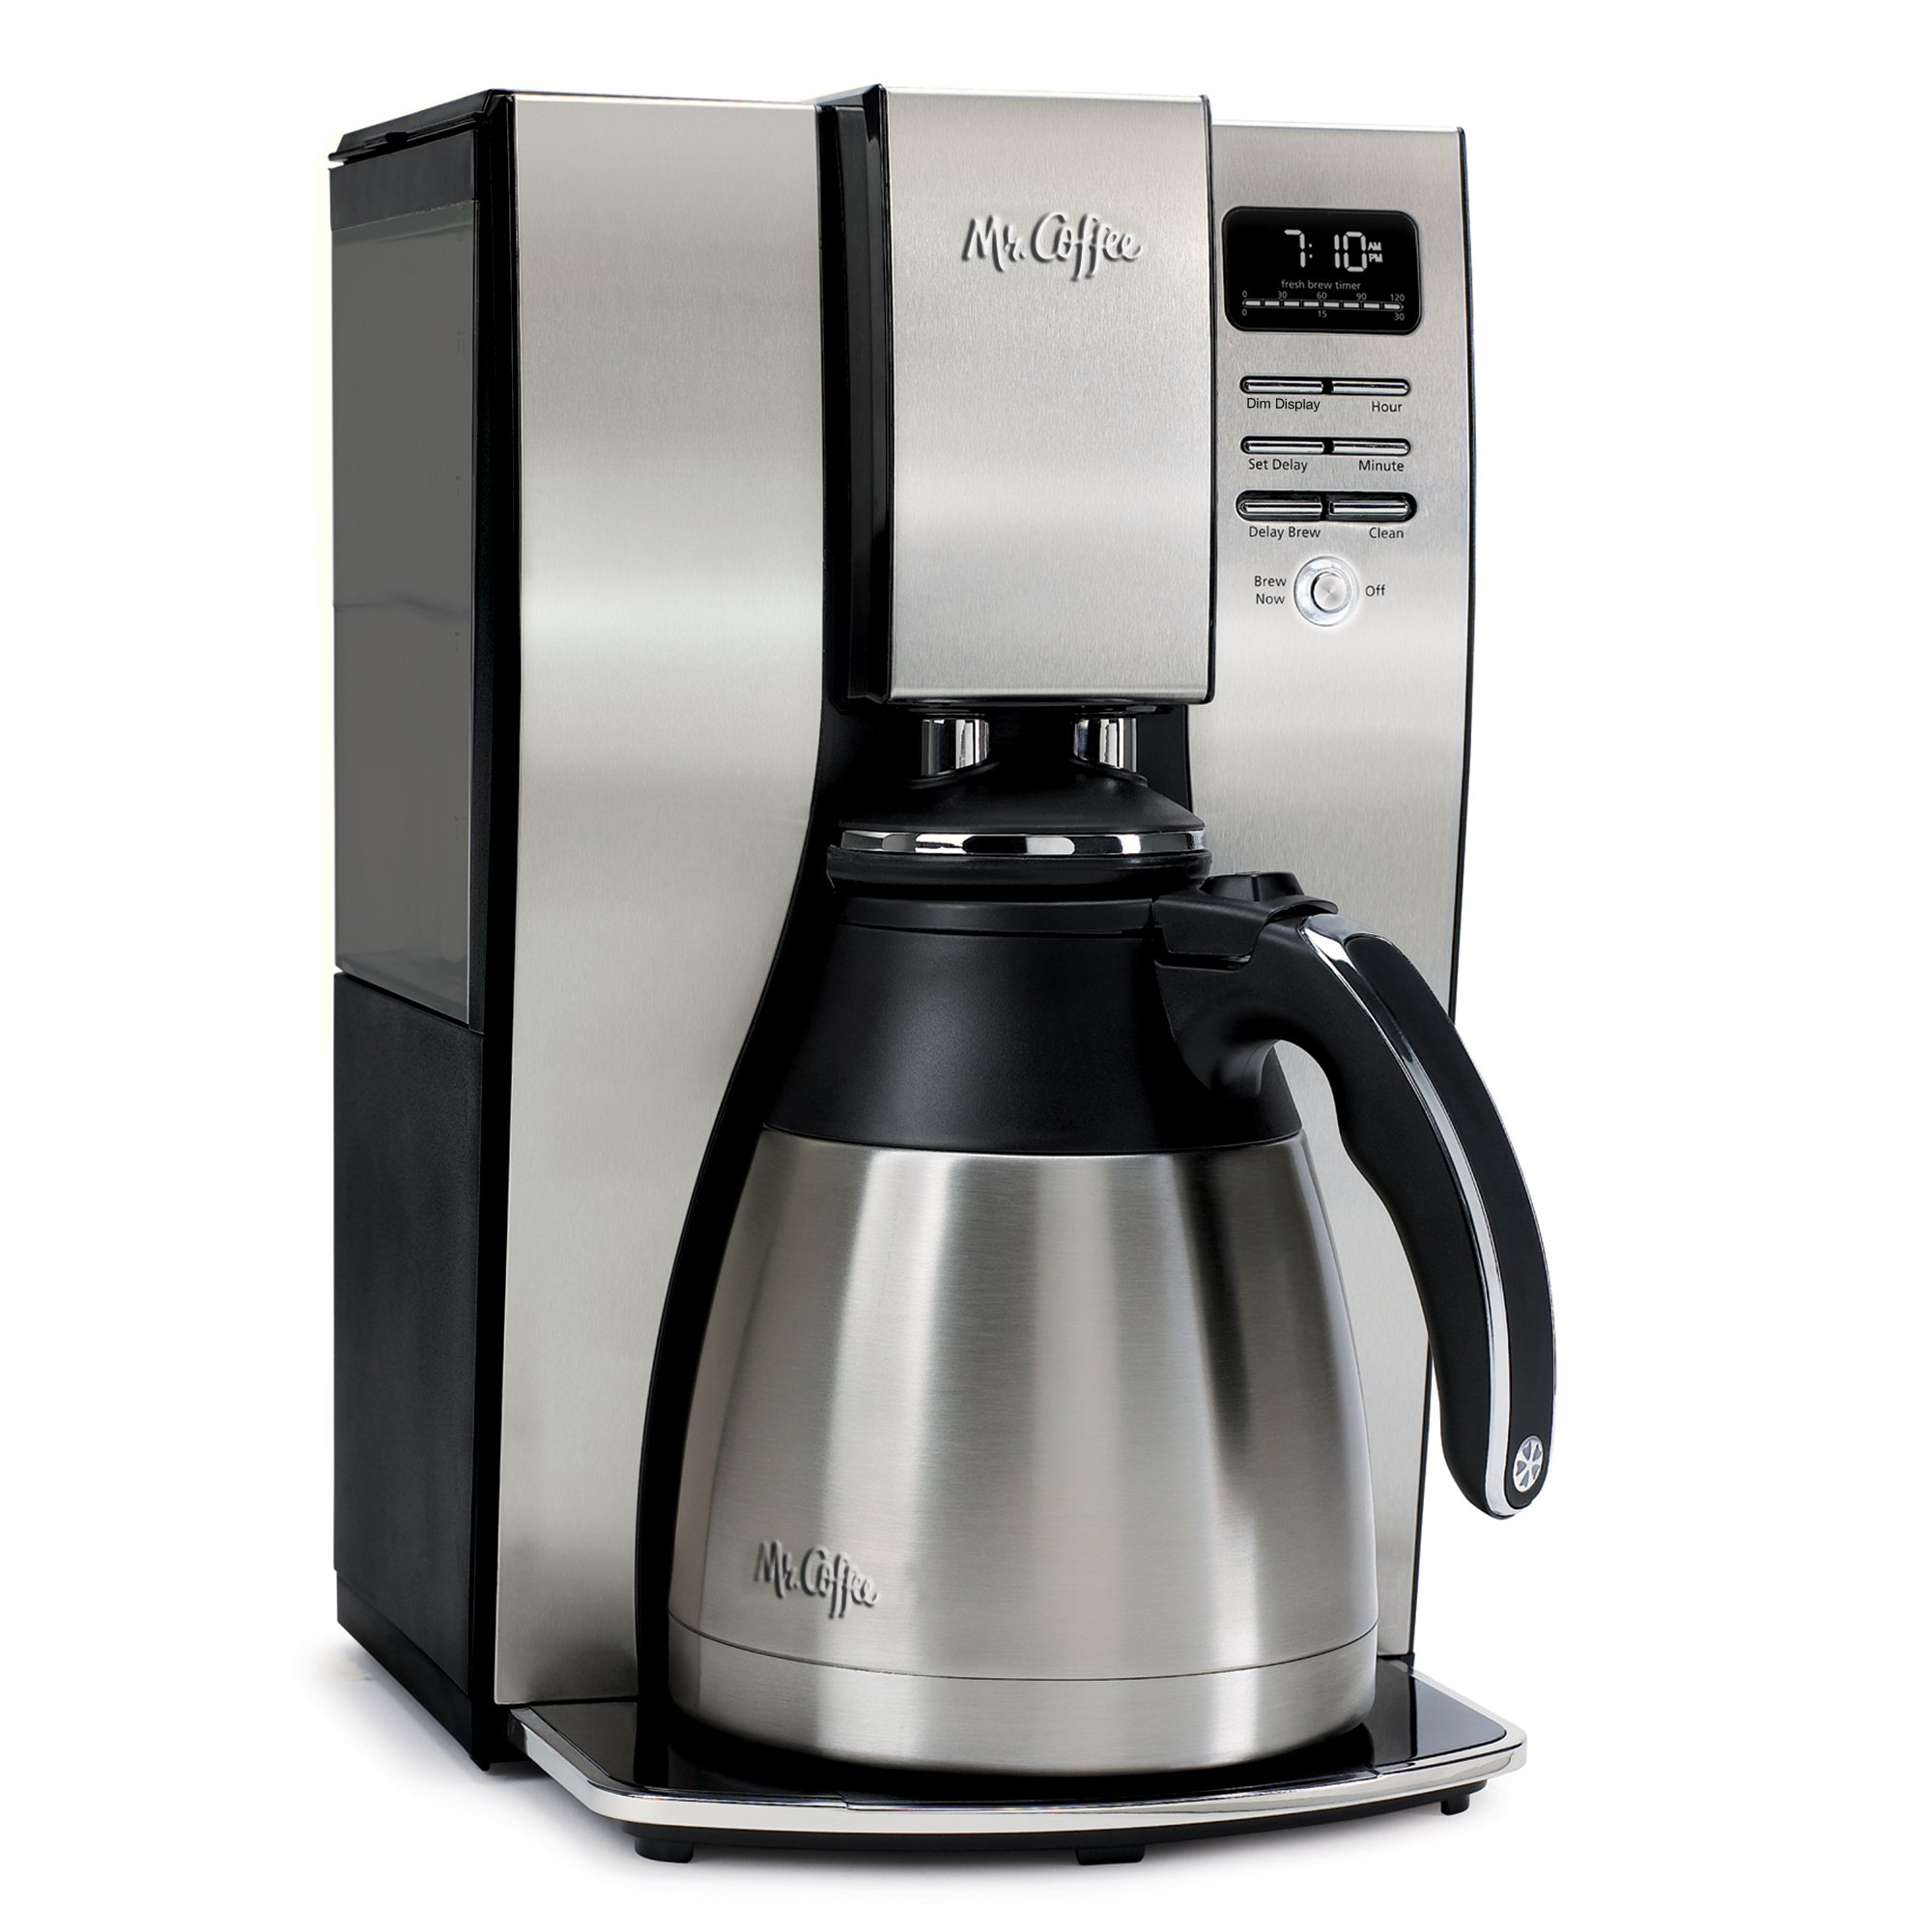 Mr. Coffee 10-Cup Optimal Brew Thermal Coffee Maker, Stainless Steel by Mr. Coffee